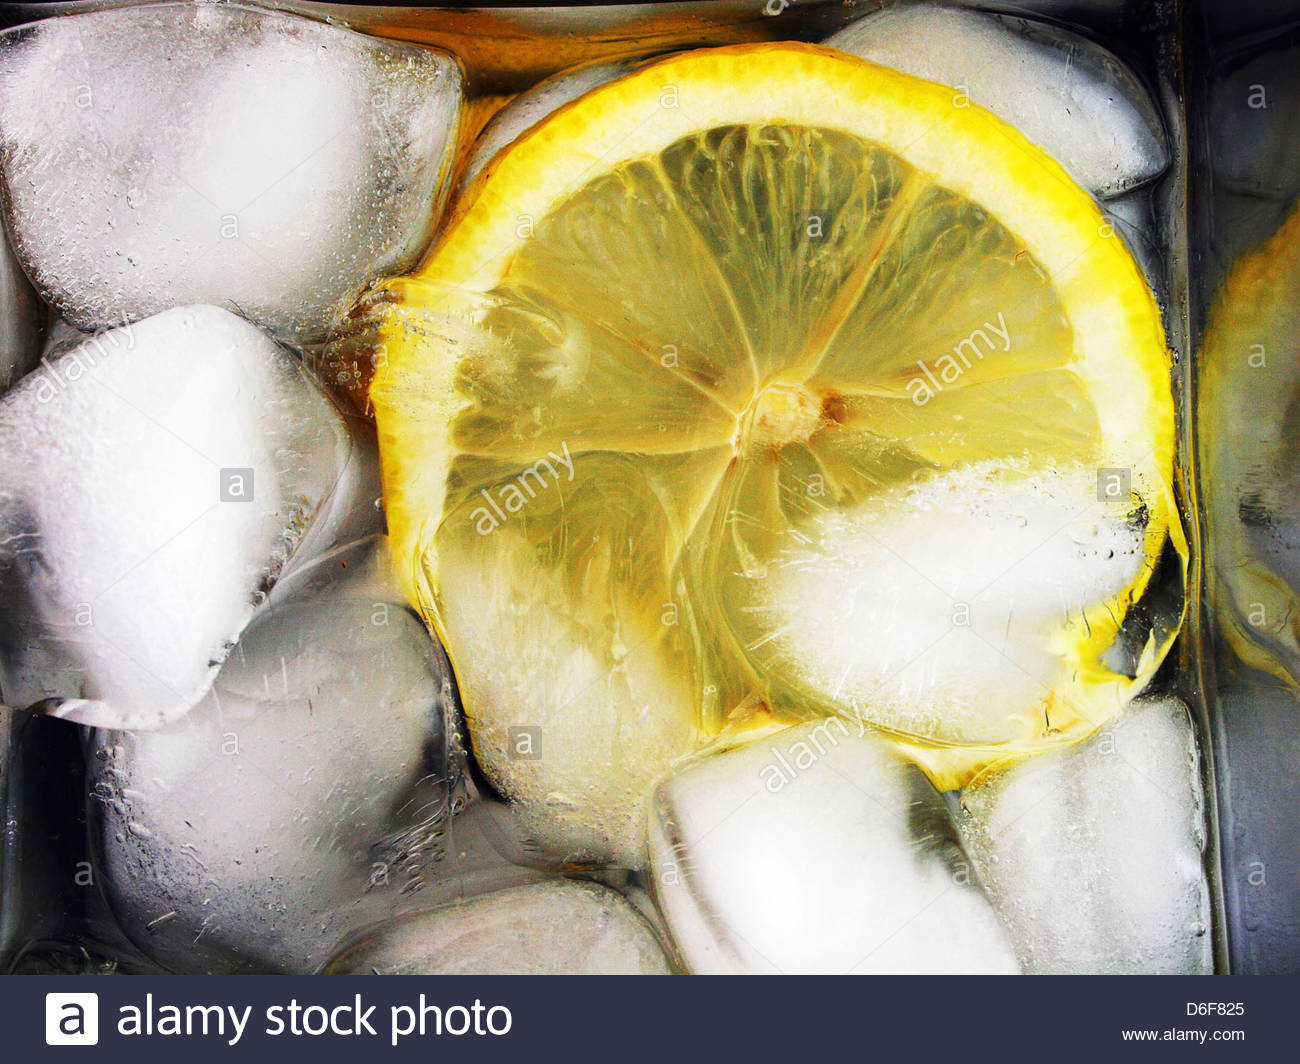 Lemon in chilled drink - Stock Image